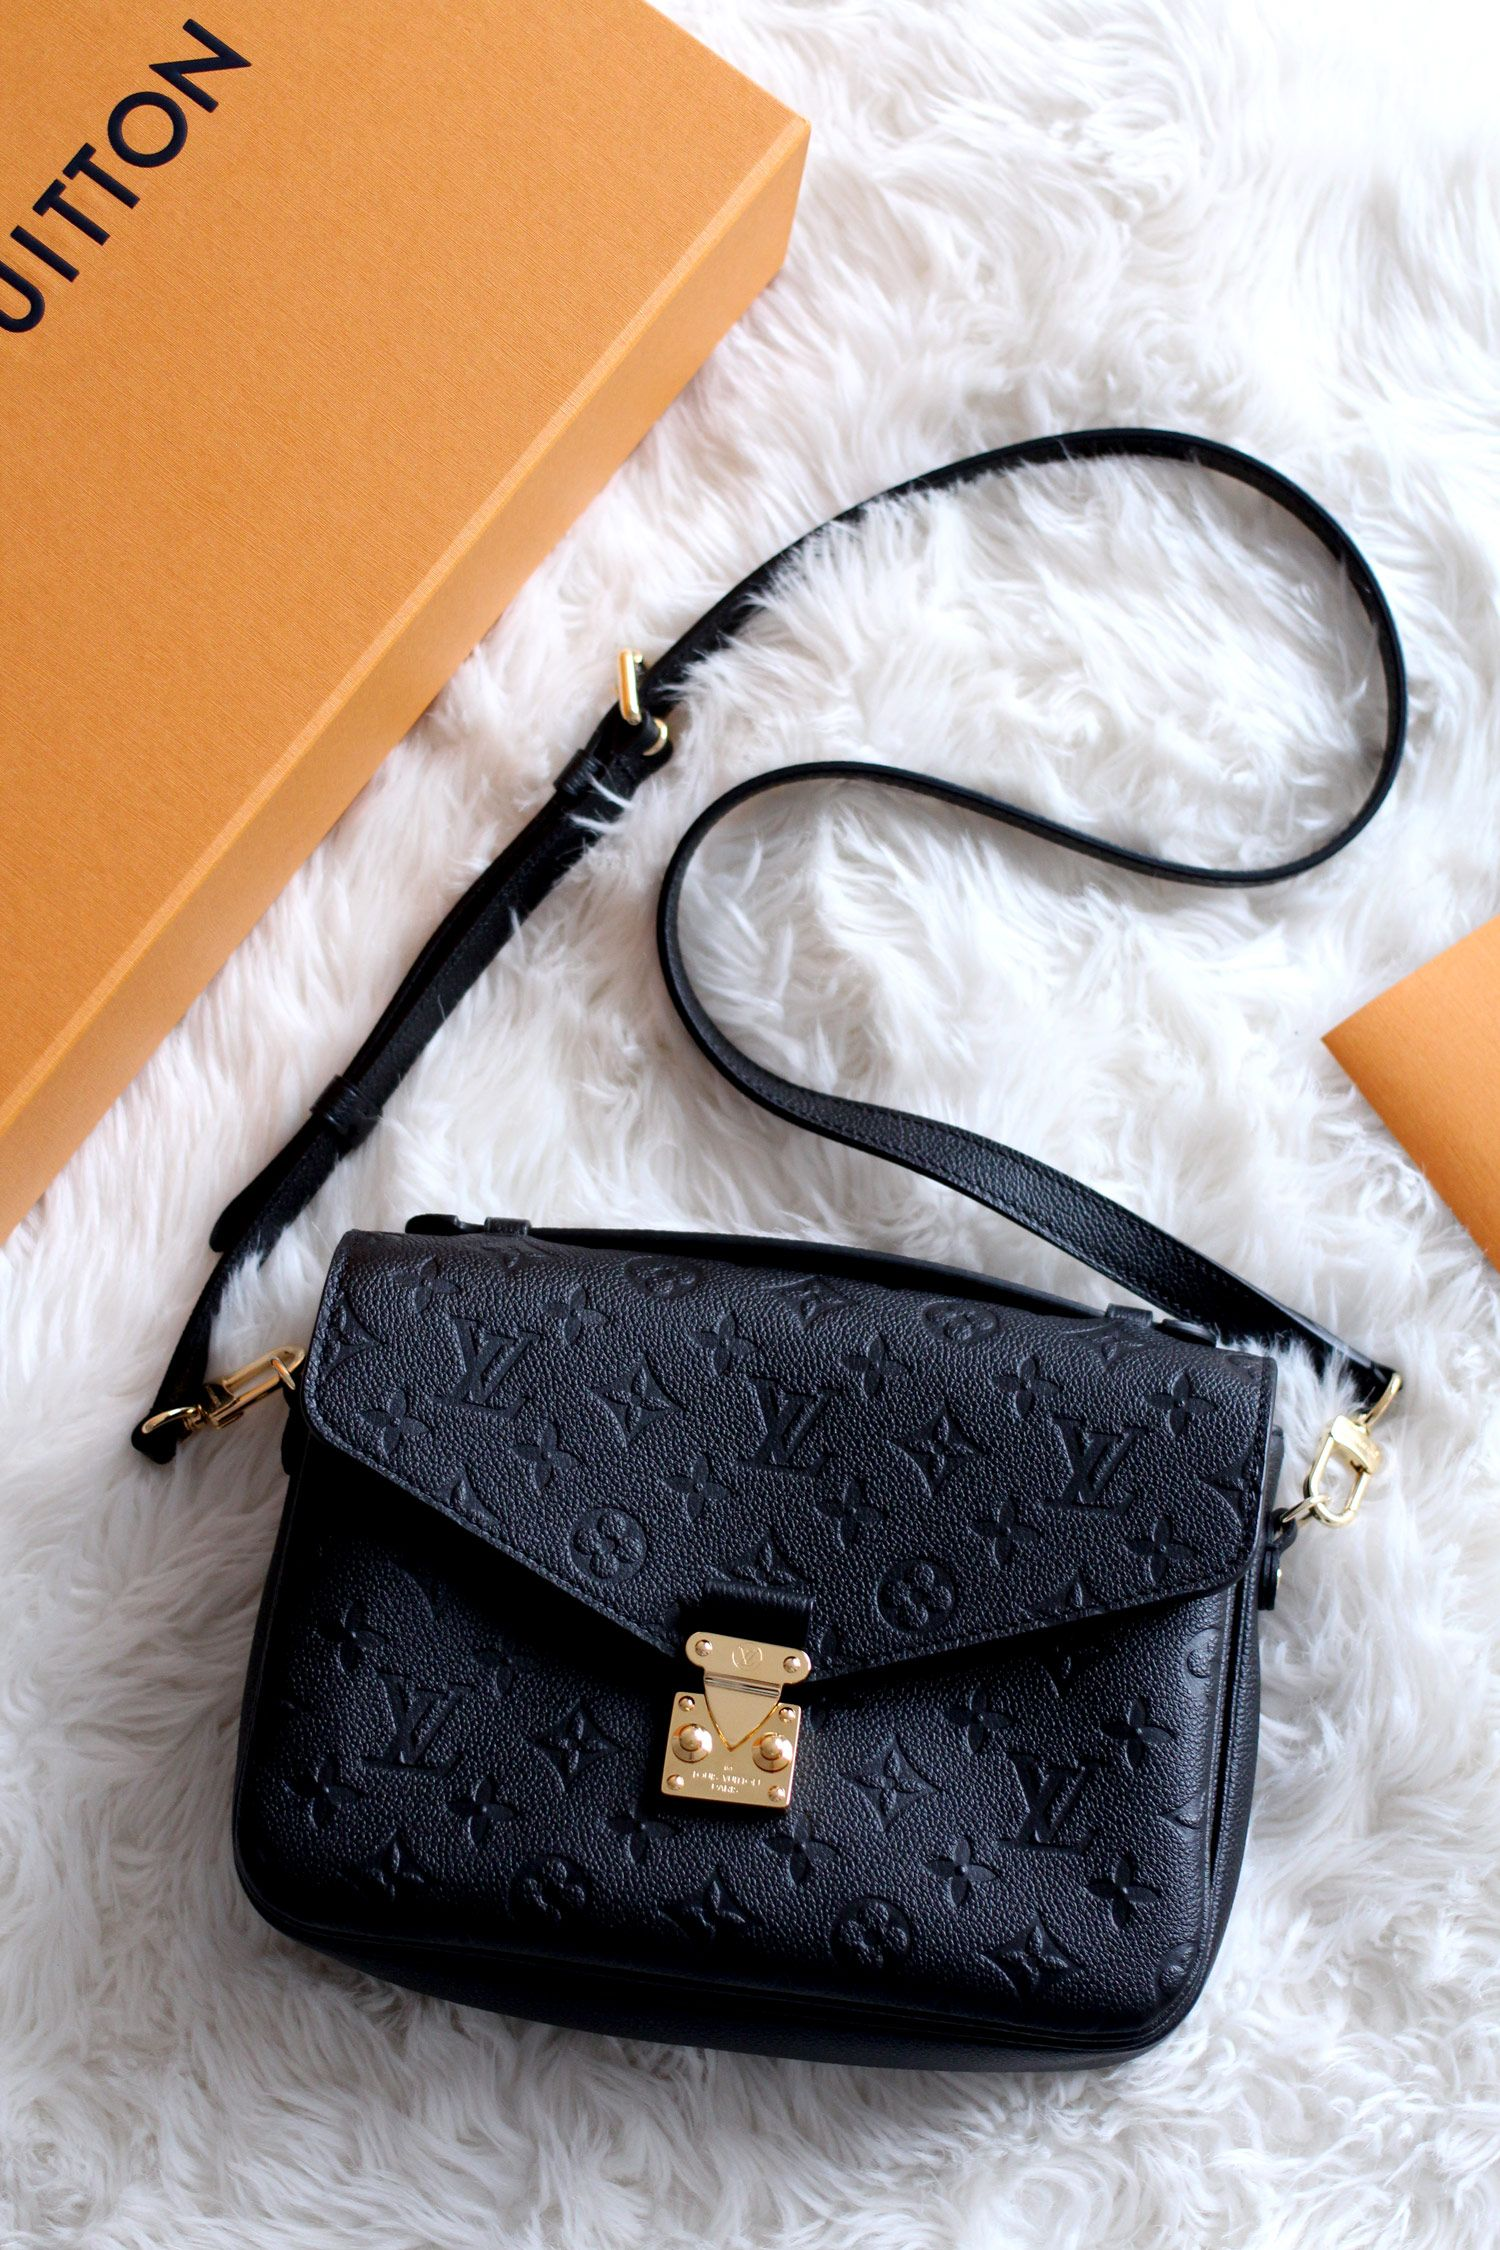 56d139222d271 The Louis Vuitton Pochette Metis in black monogram empreinte leather with  gold hardware - review and overview - luxury fashion blogger UK